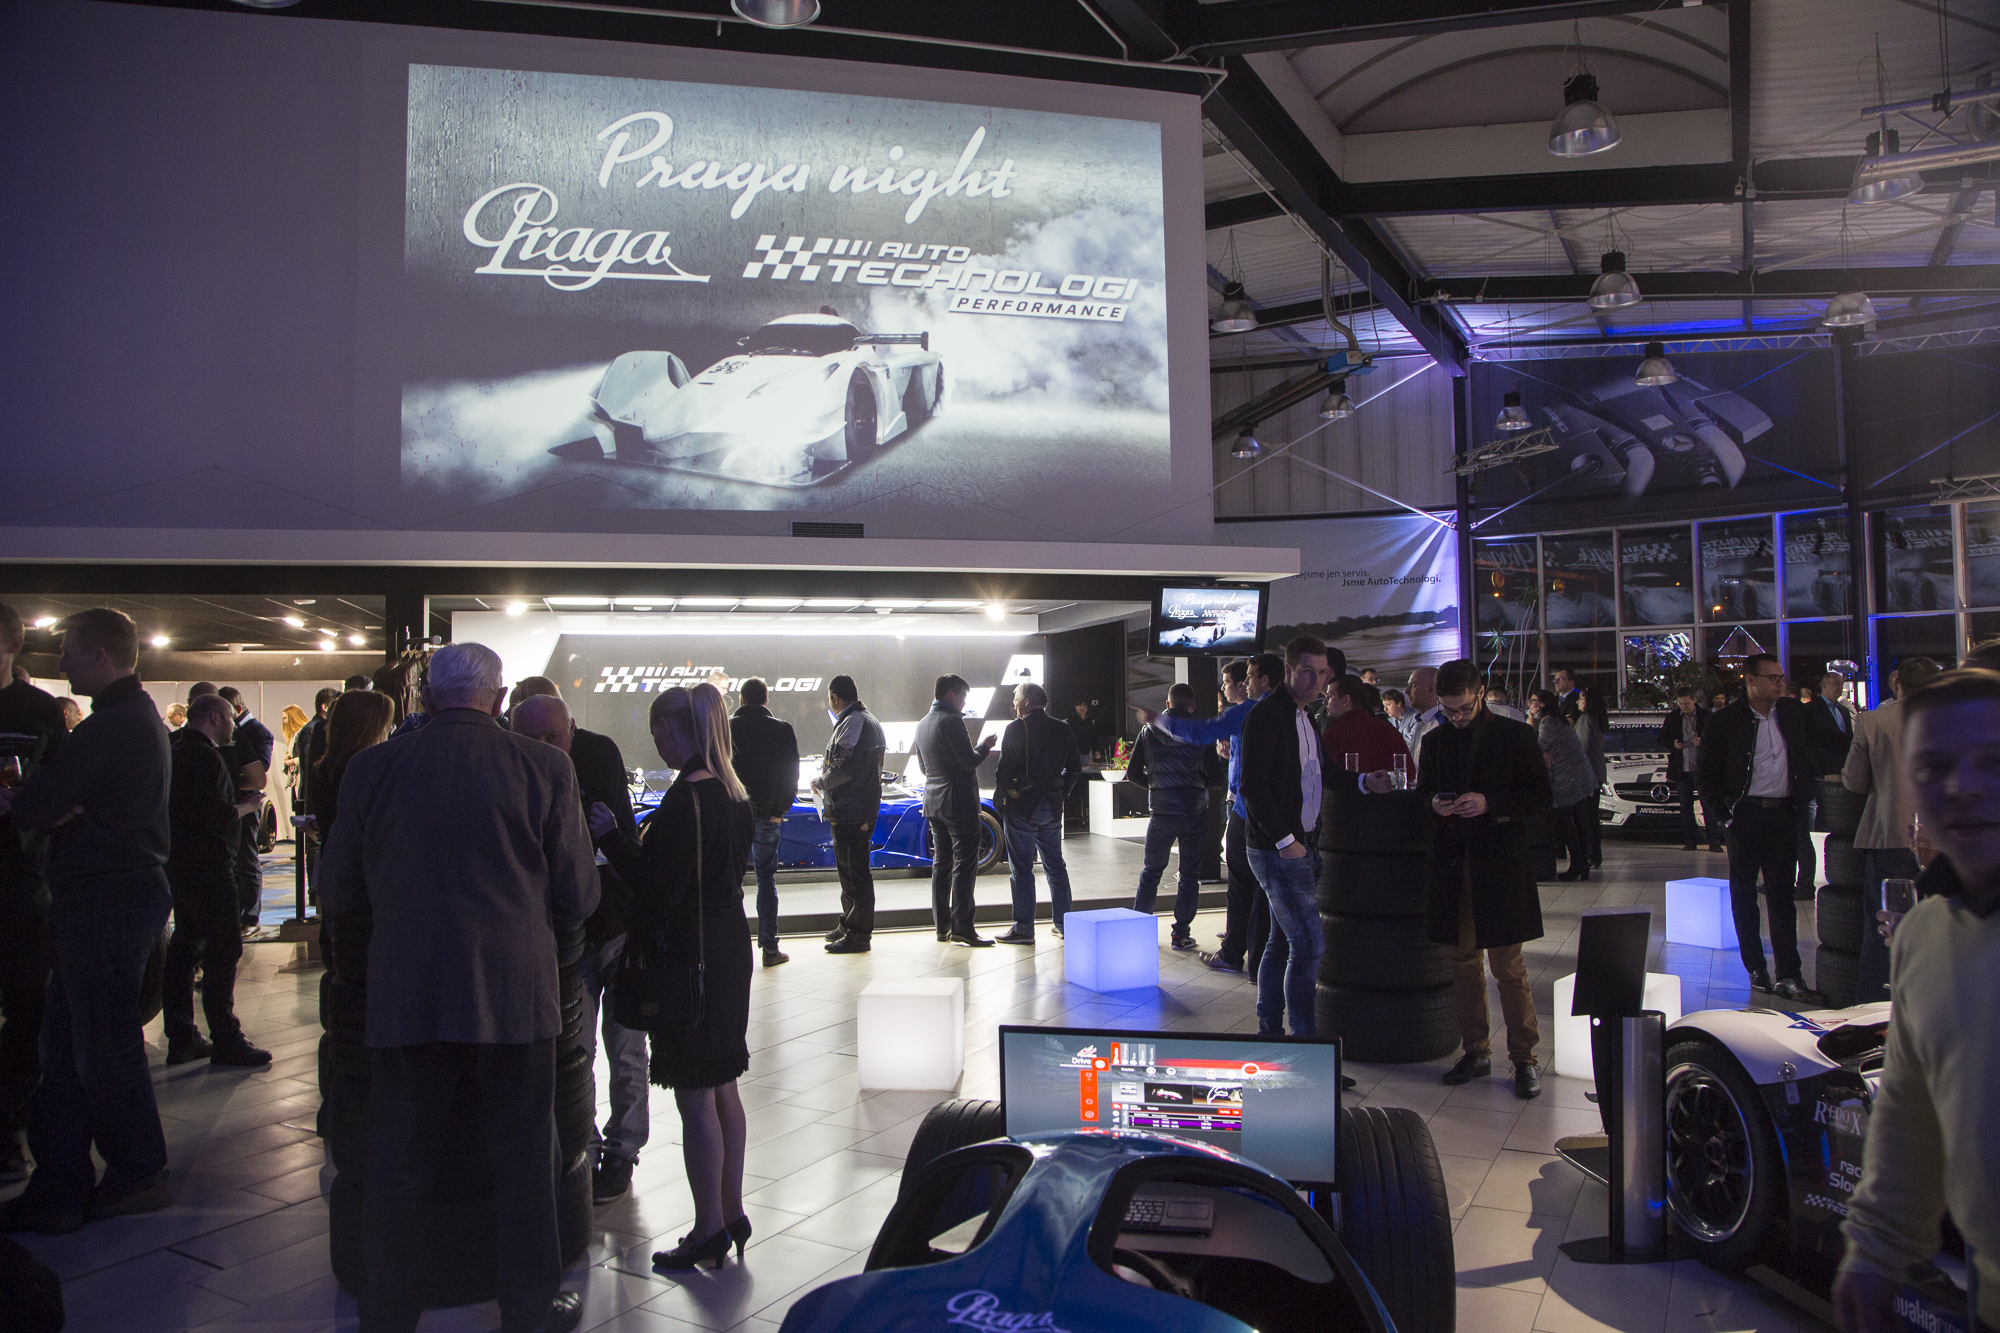 Praga will offer a new arrive and drive package of the fastest Czech racing car